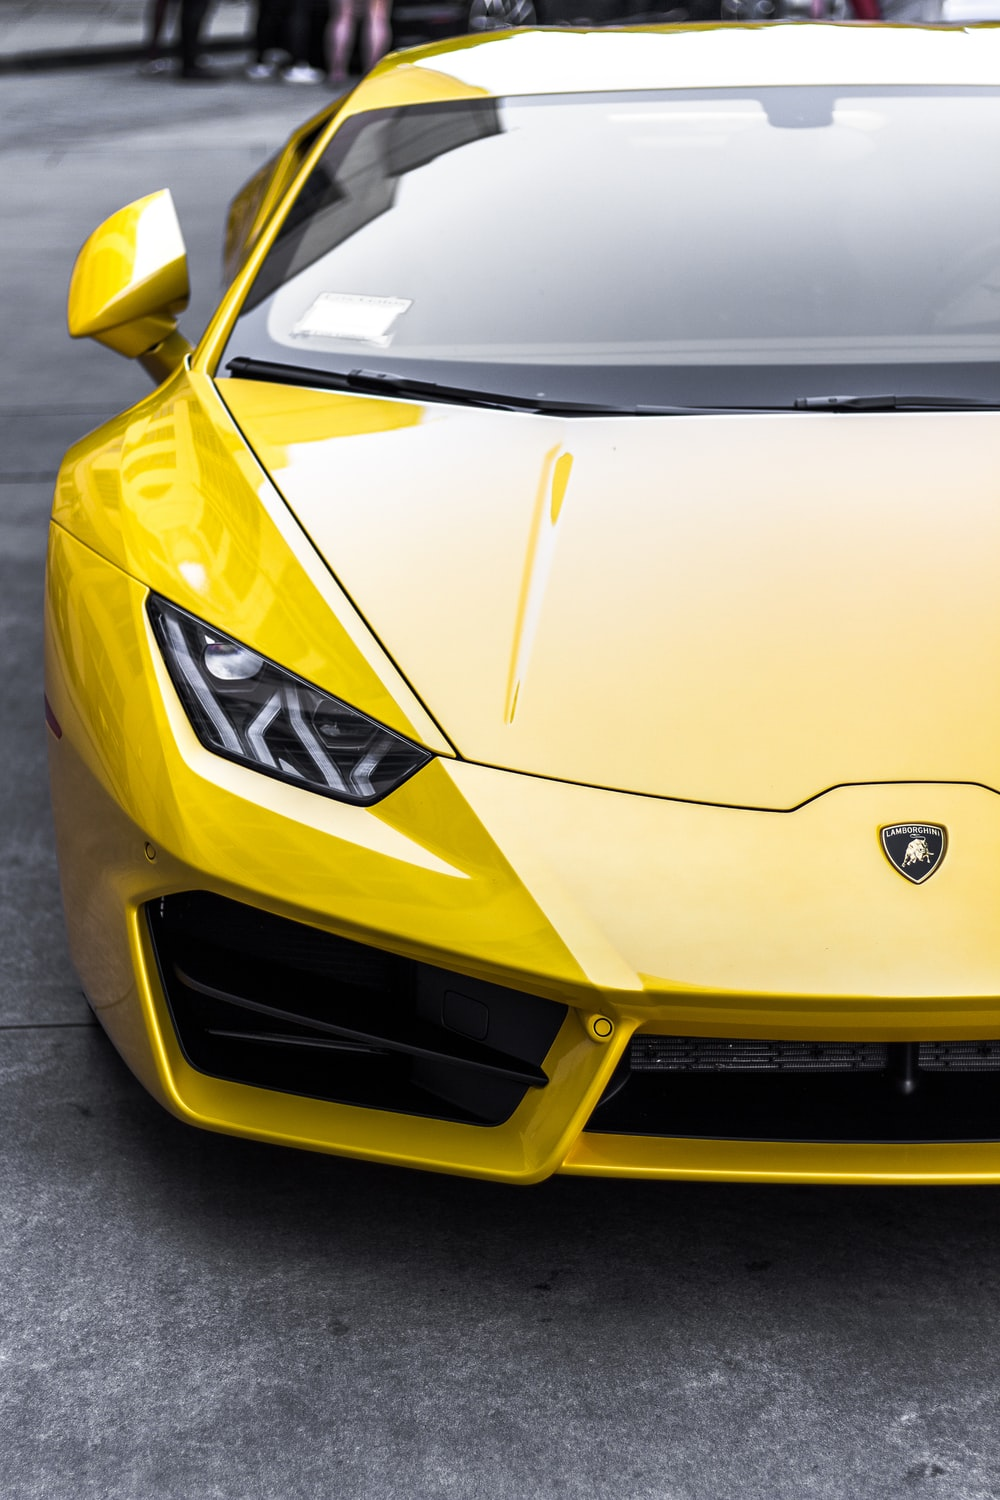 Lamborghini Wallpapers Free Hd Download 500 Hq Unsplash